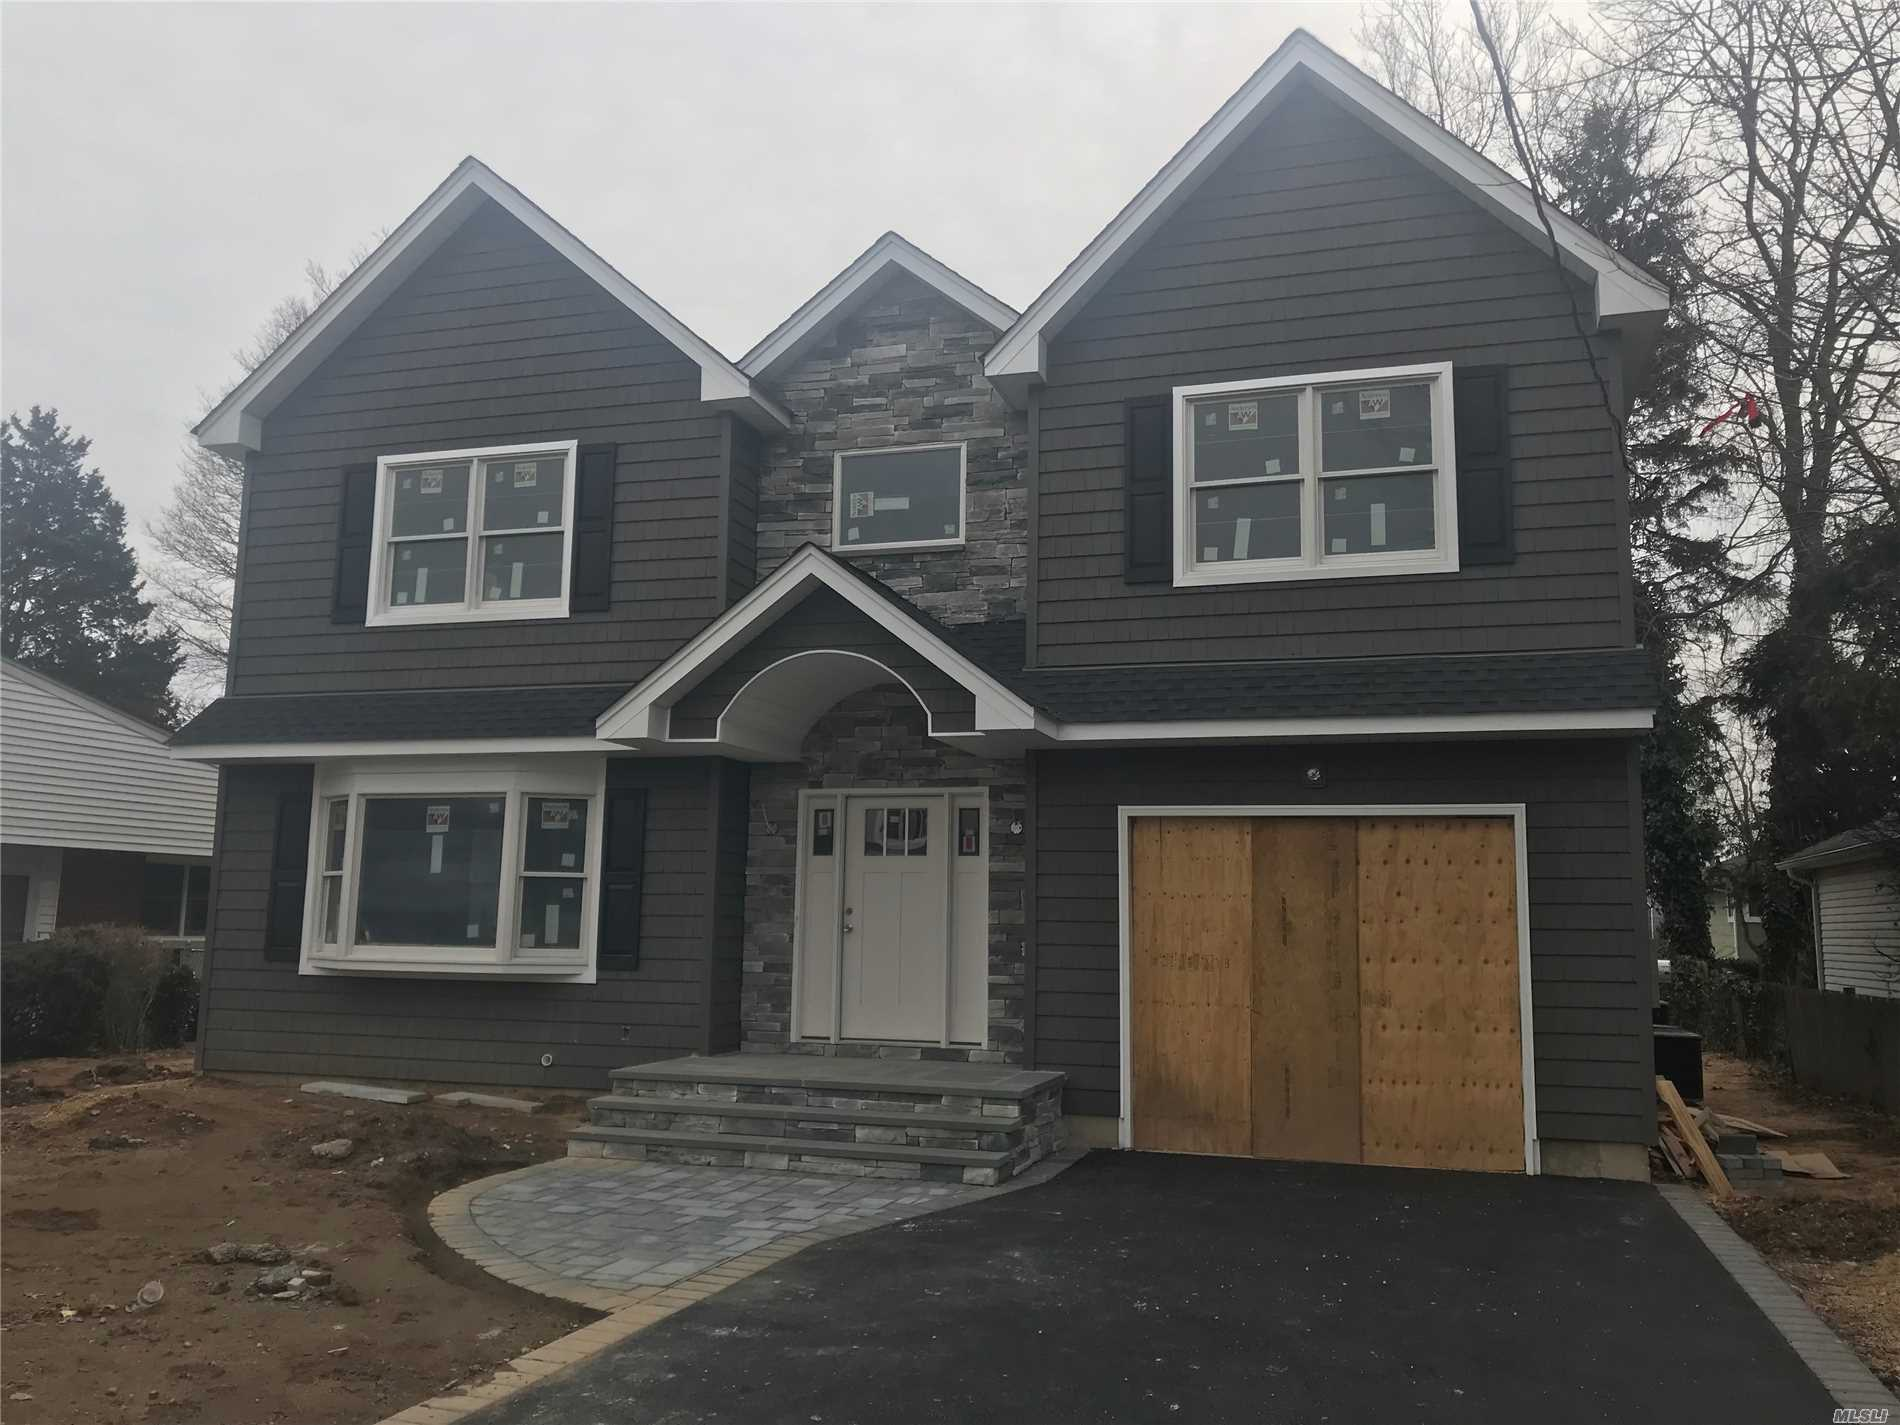 New Construction! 4 Bedroom, 2.5 Bath Colonial Features Granite Eat-In-Kitchen W/White Shaker Cabnets, Formal Dining, Living Room, Den, Laundry Room On 2 Level, Hardwood Floors Thru-Out, Crown Moldings, Fireplace, 2 Zone Cac, Basement With 9 Foot Ceilings And Attached 1 Car Garage.